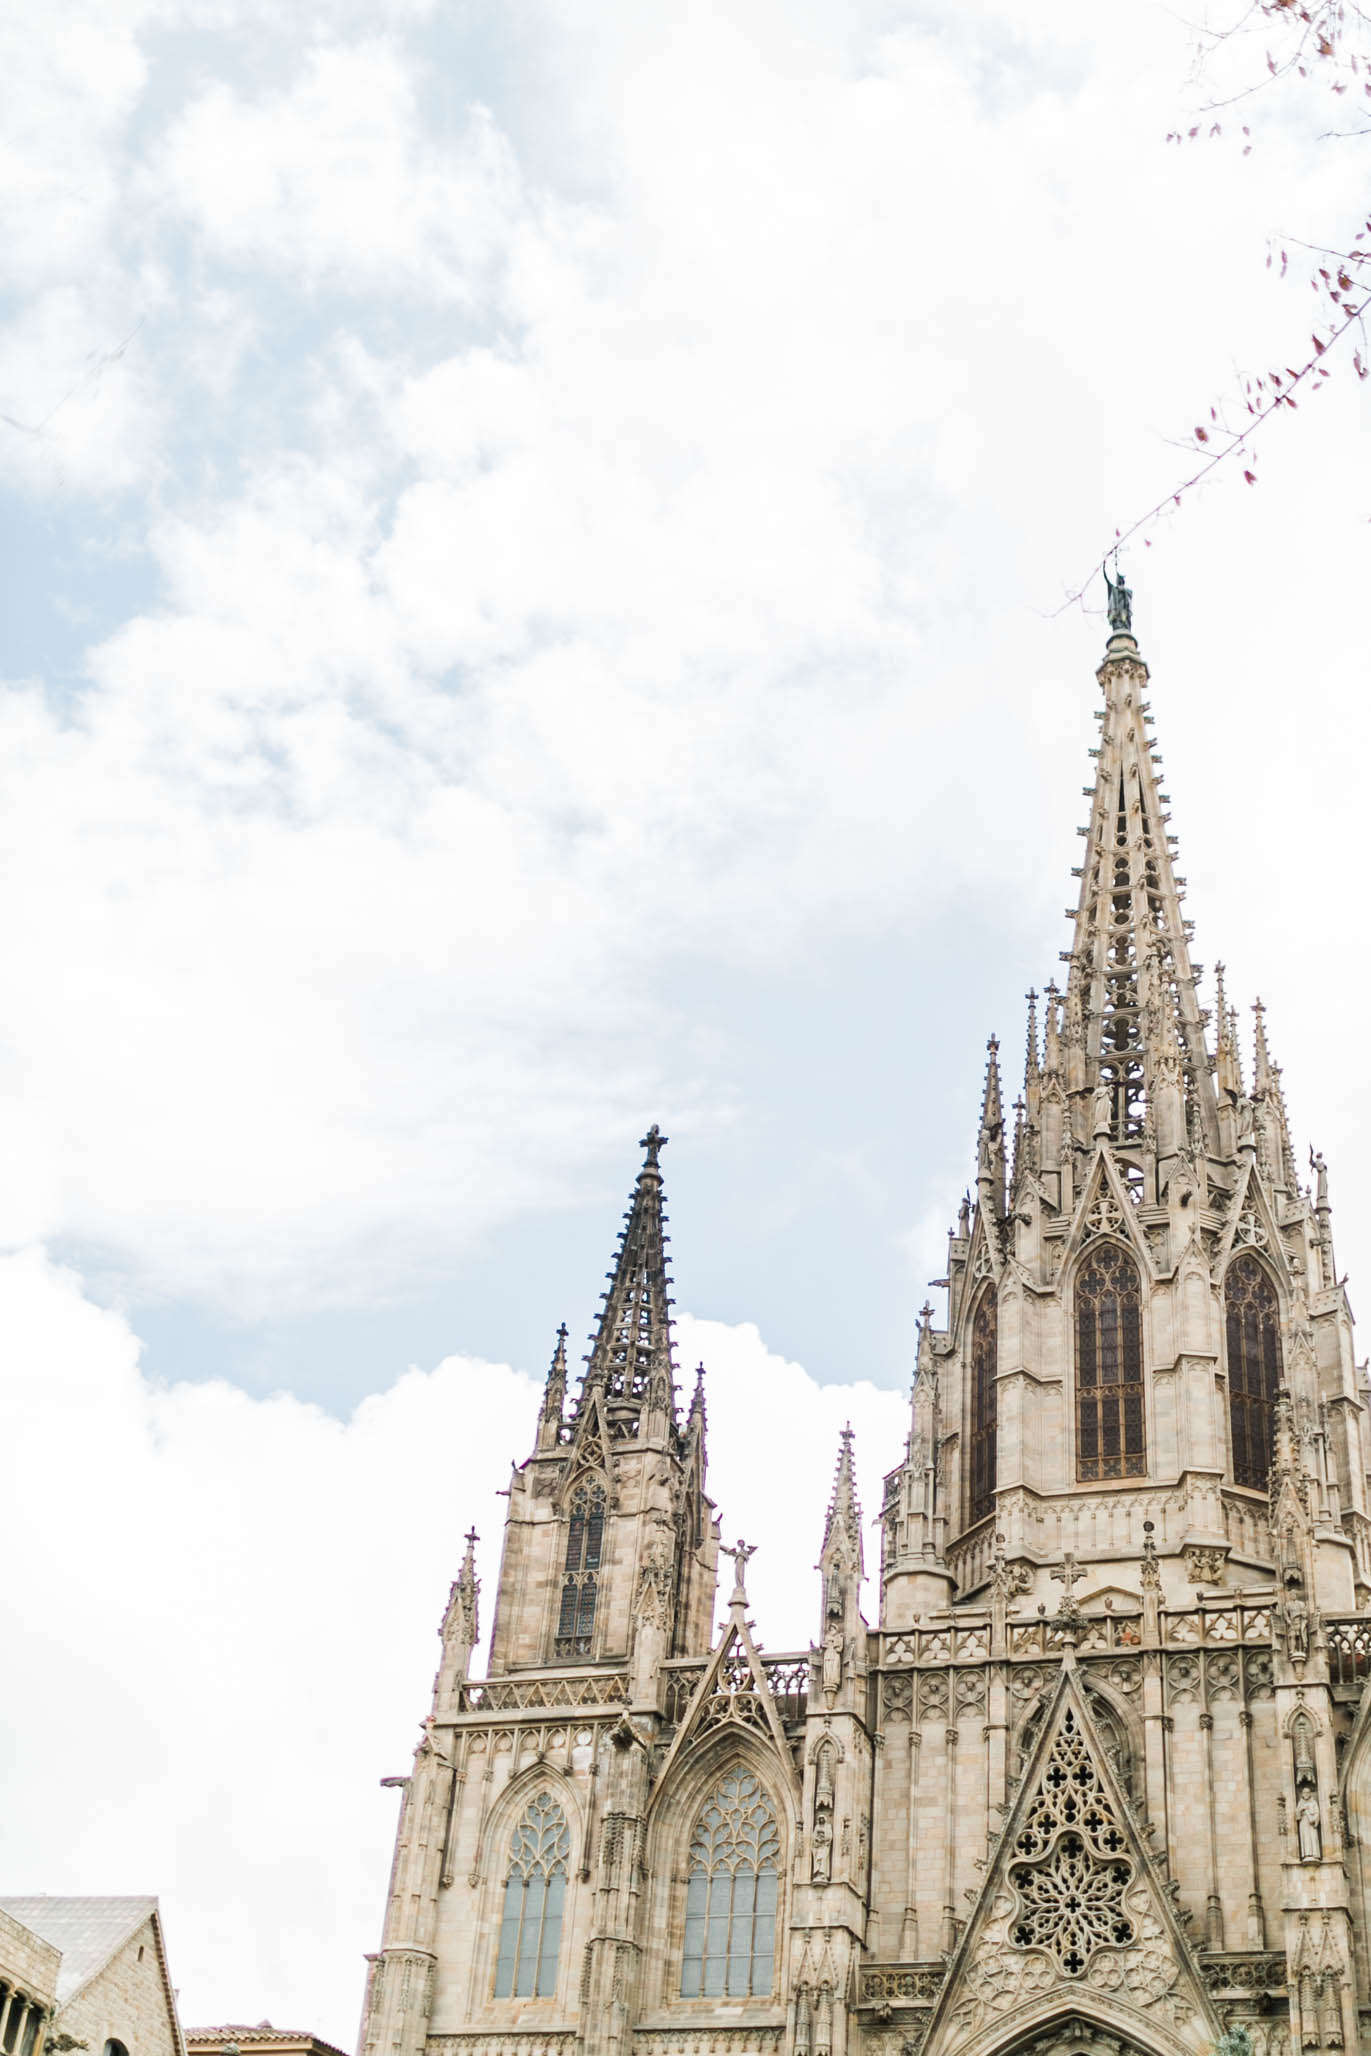 The Gothic Cathedral in Barcelona took my breath away.  Just staring at the crumbling cinder blocks, clustered columns, and aging gargoyles took me to the year 1144 when they begin building this beautiful thing.